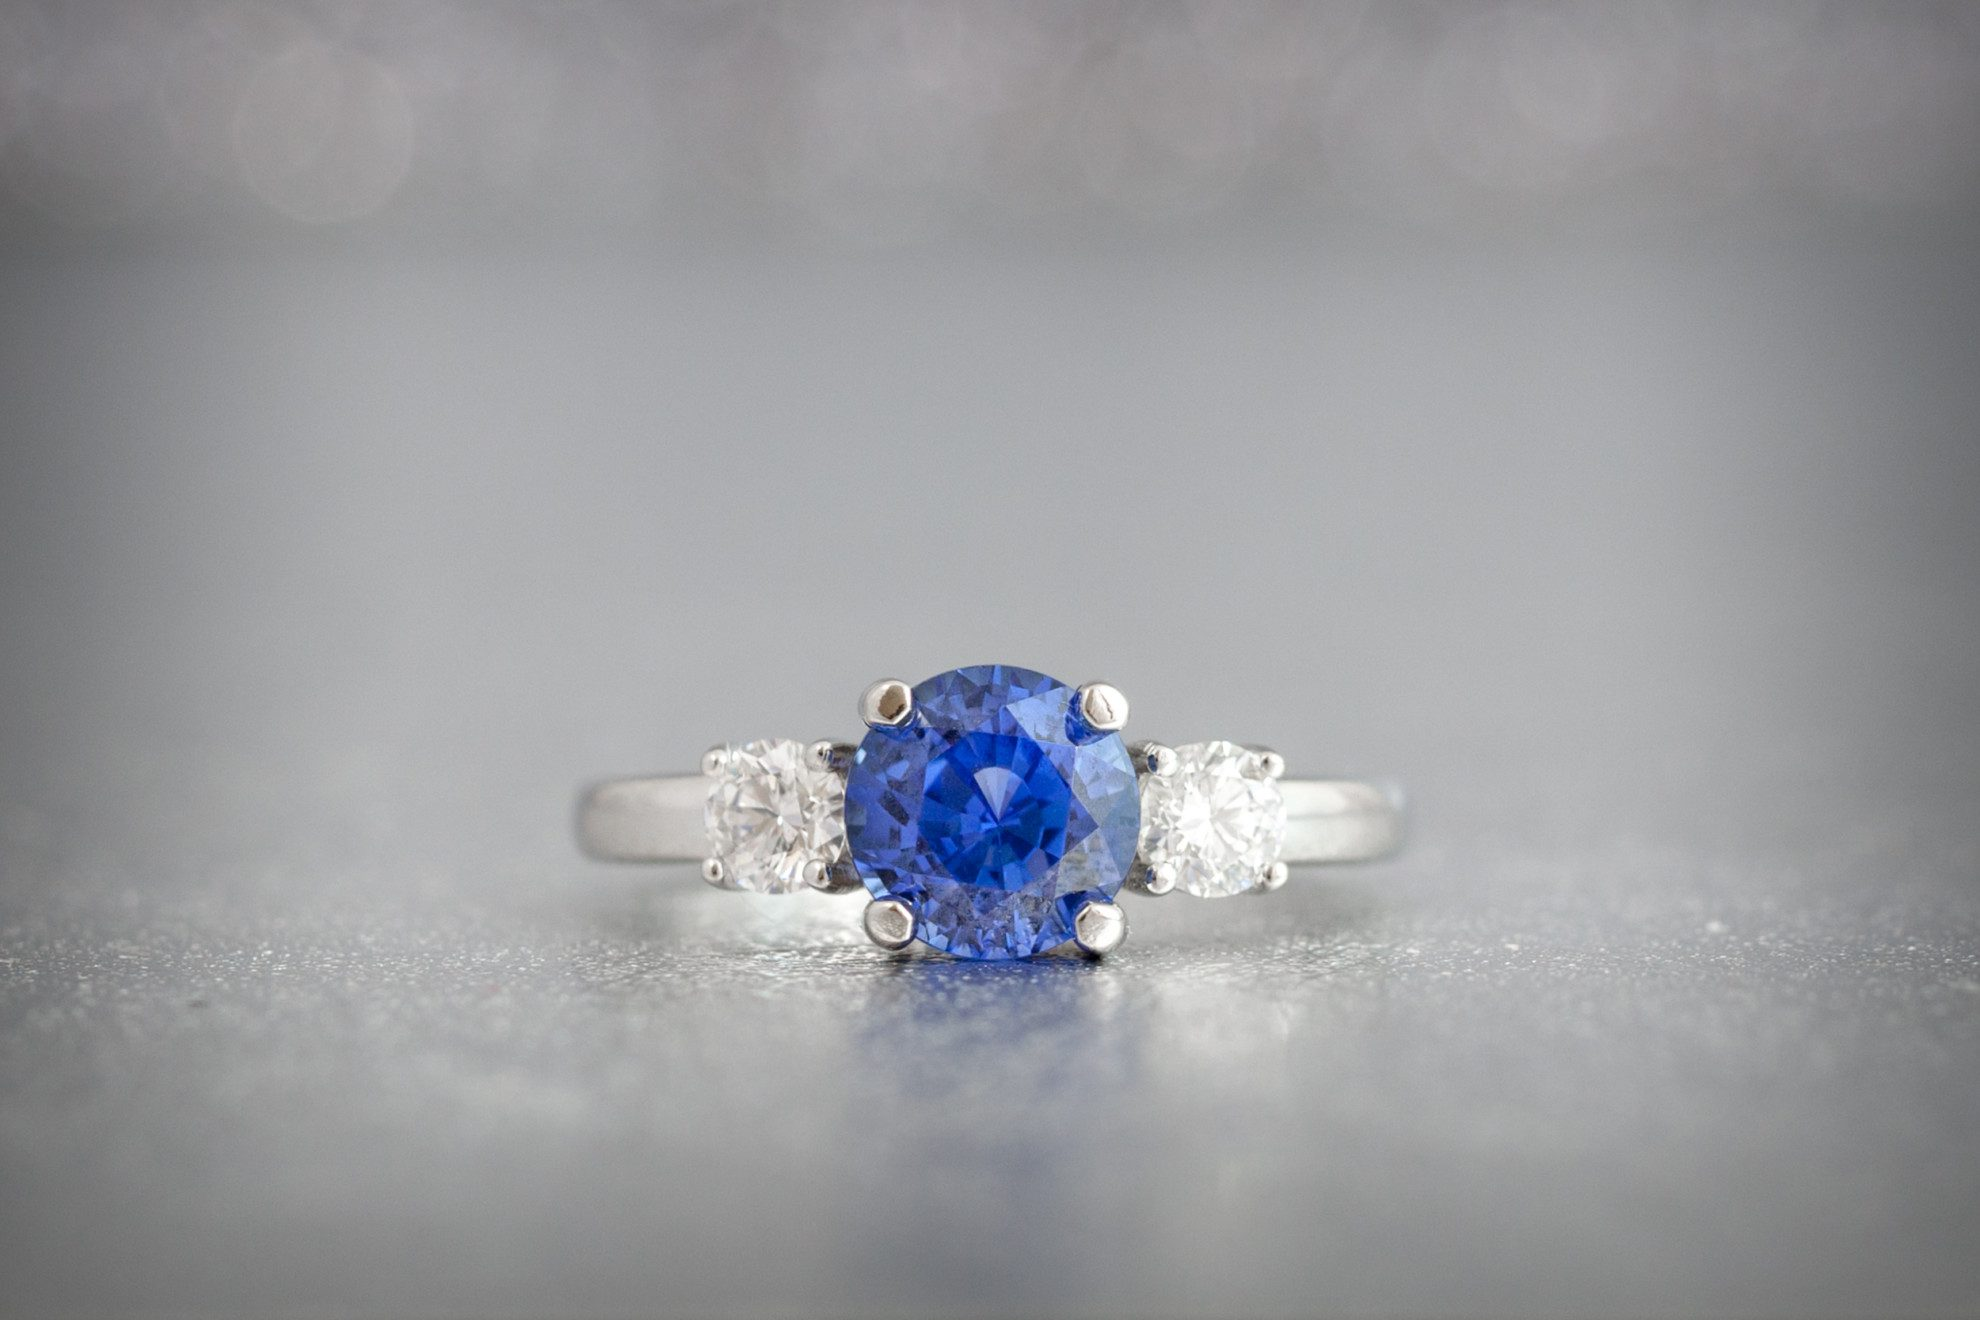 pin round sapphire rings engagement stones quality a vintage platinum diamond gem ring